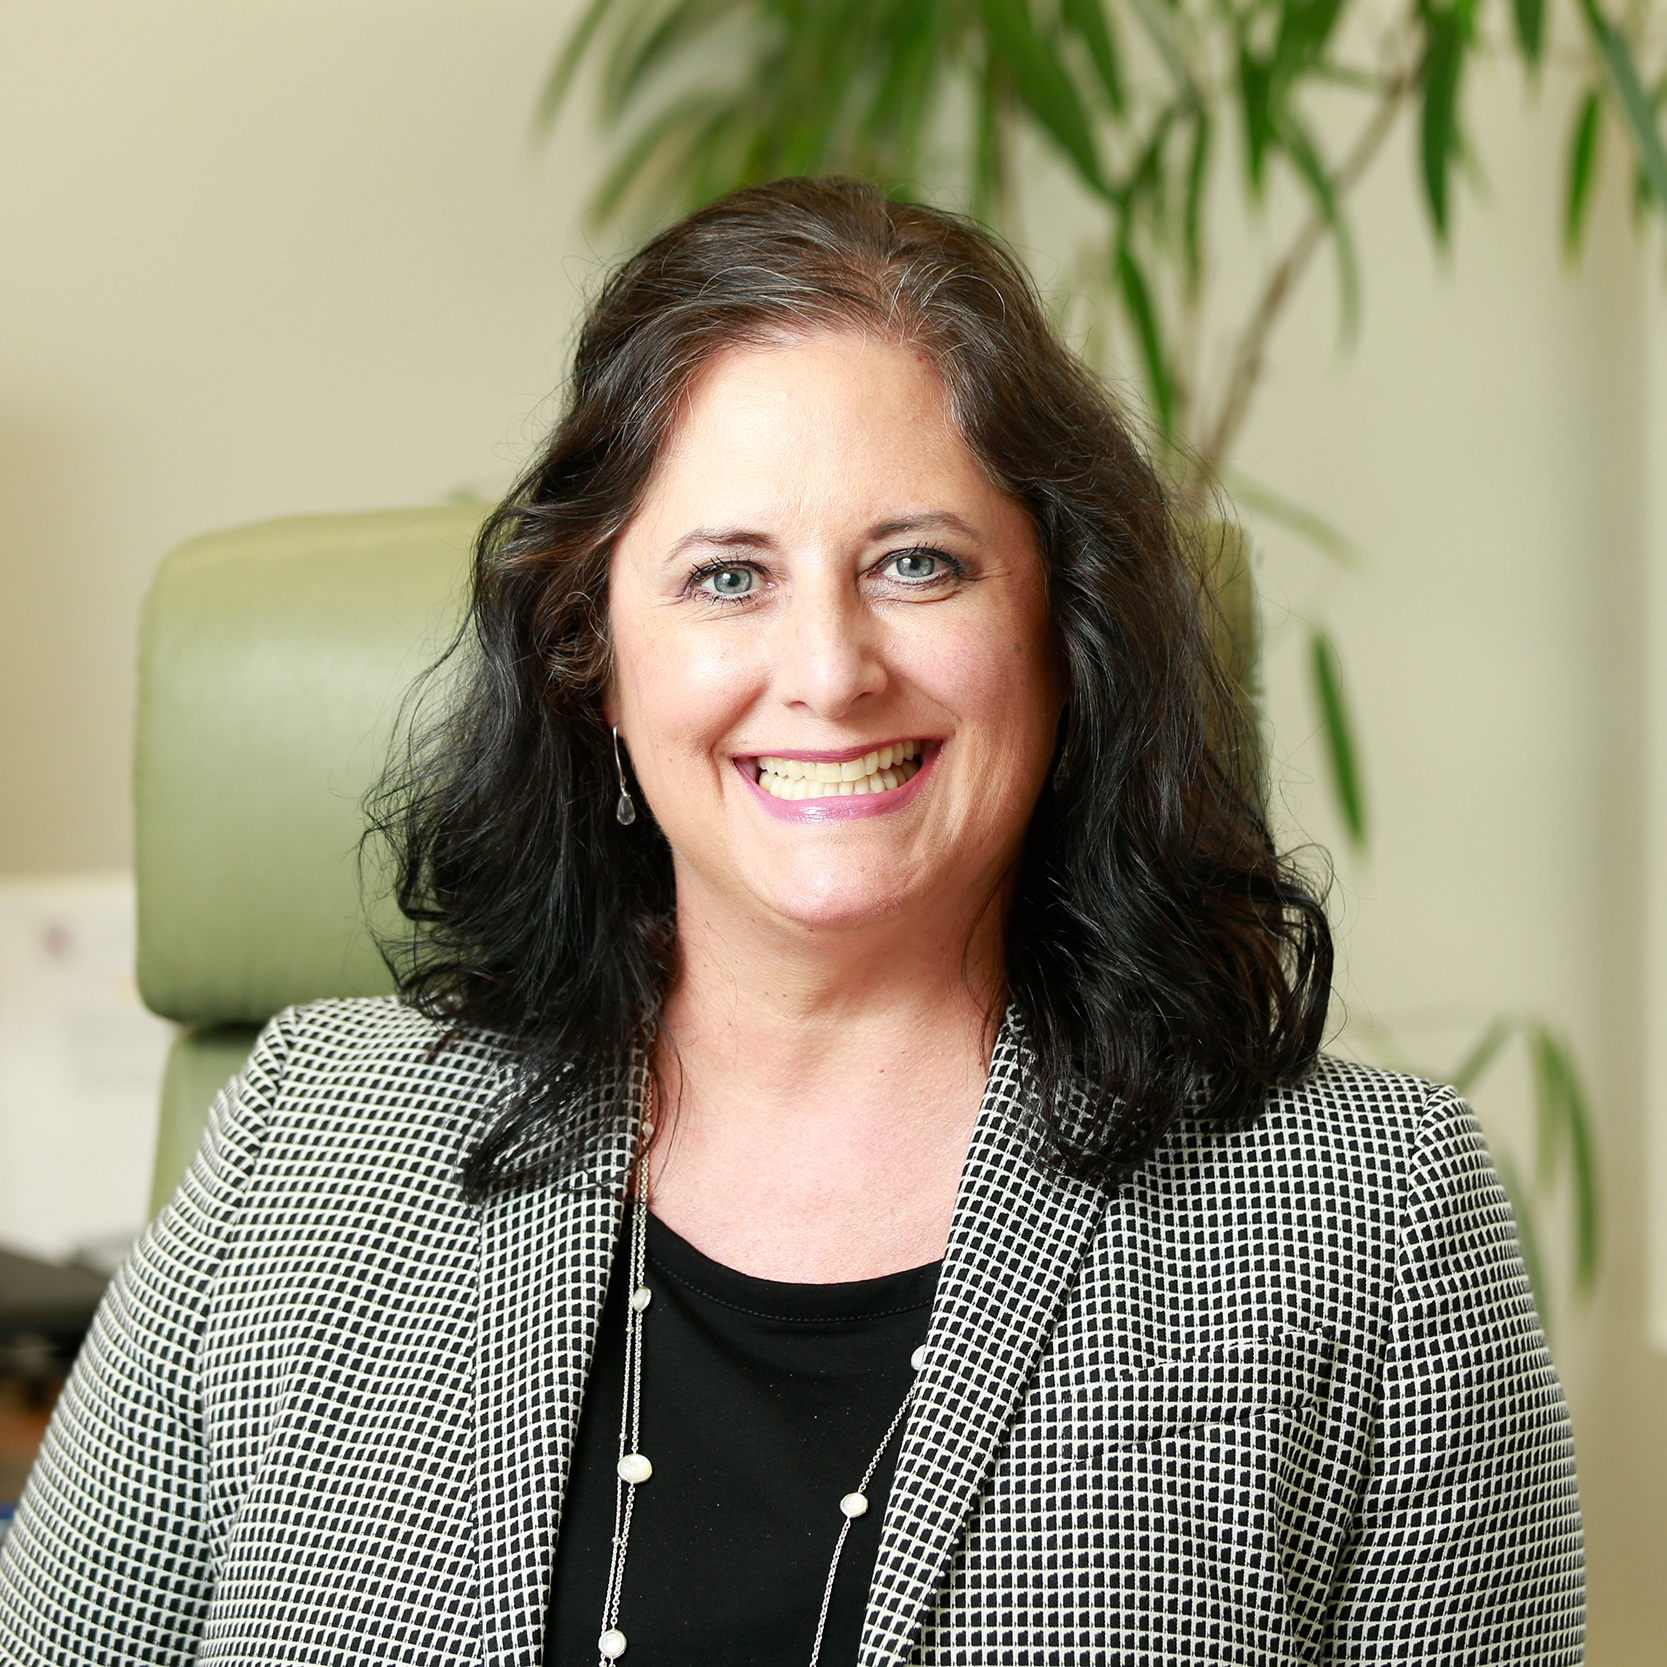 Maribeth Conway - Maribeth Conway's practice focuses on estate and tax planning, probate and trust administration, business succession and asset protection planning.